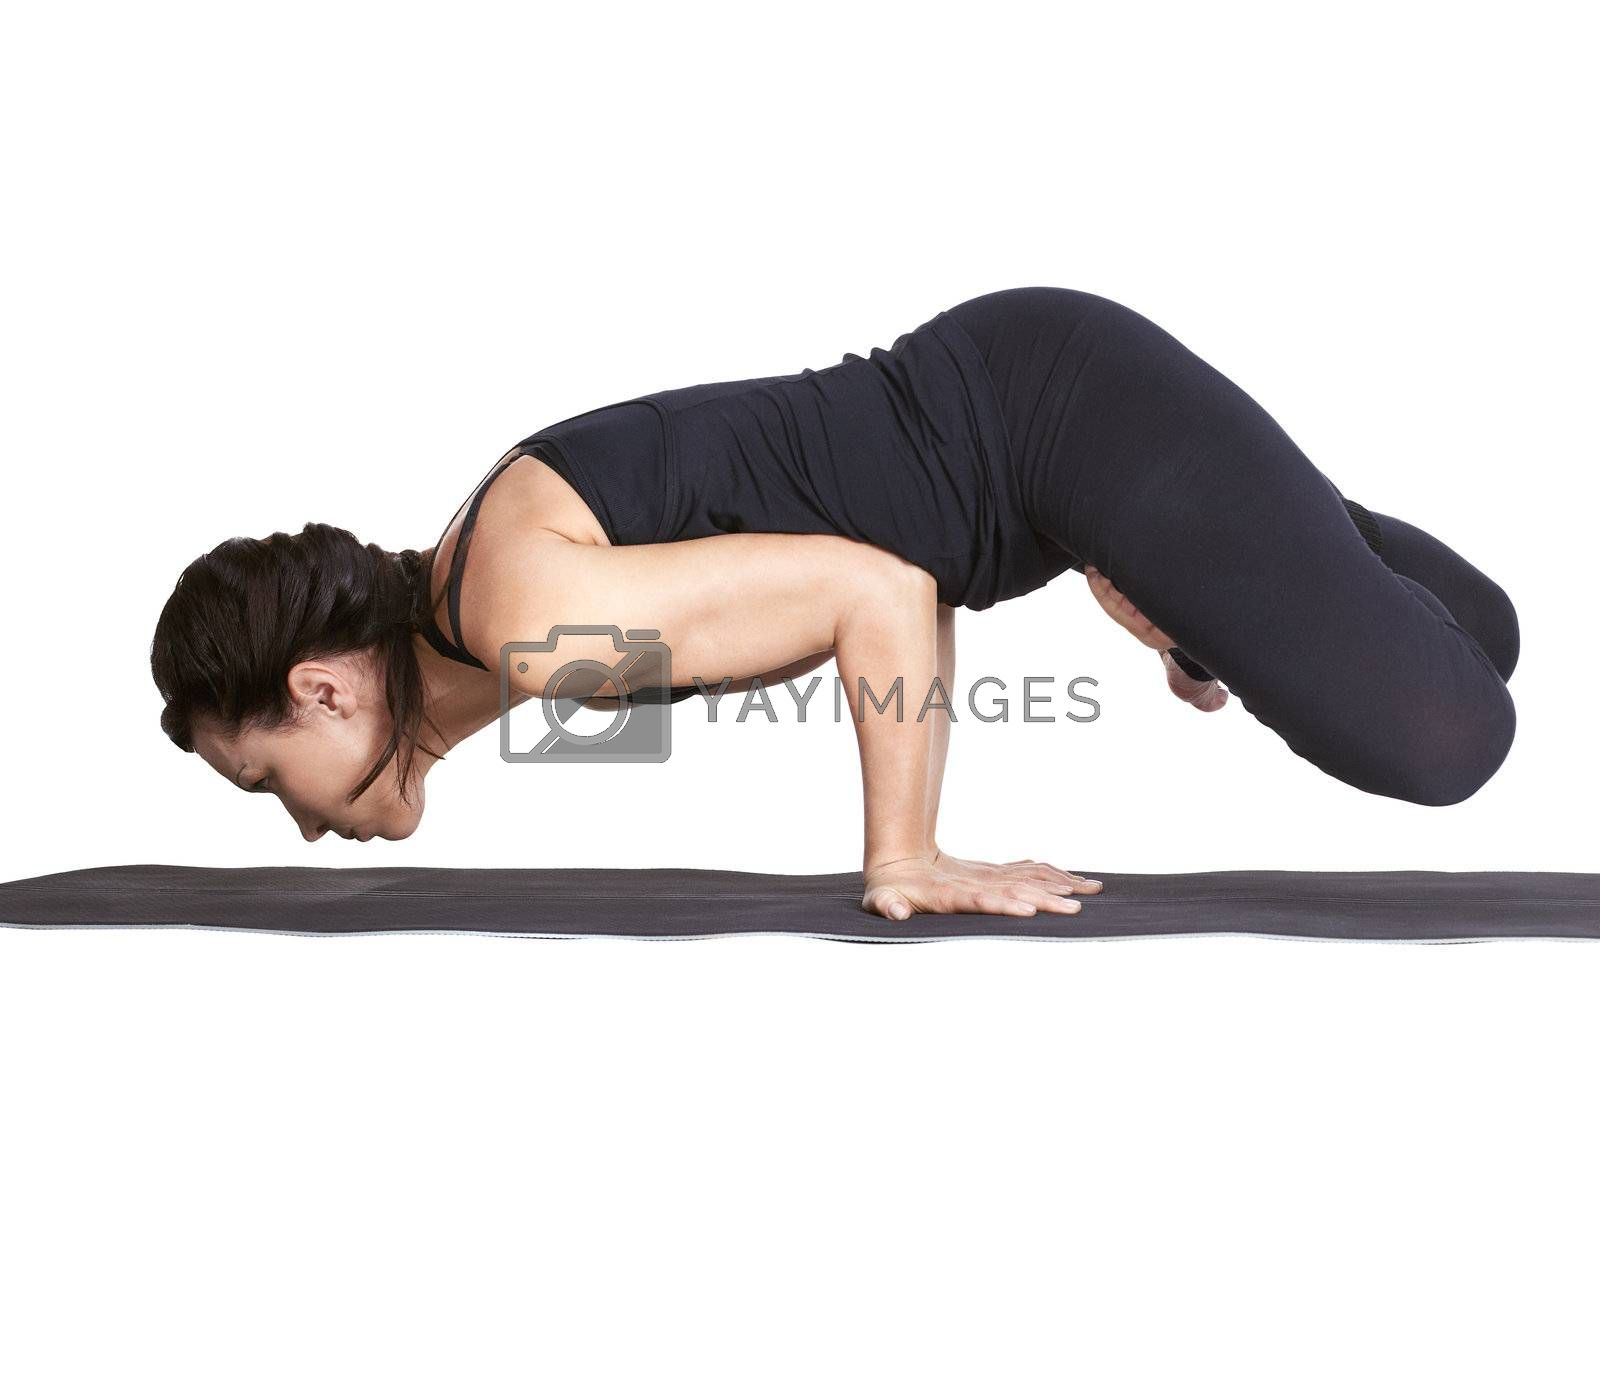 full-length portrait of beautiful woman working out yoga exercise balancing on hands in padma mayurasana pose